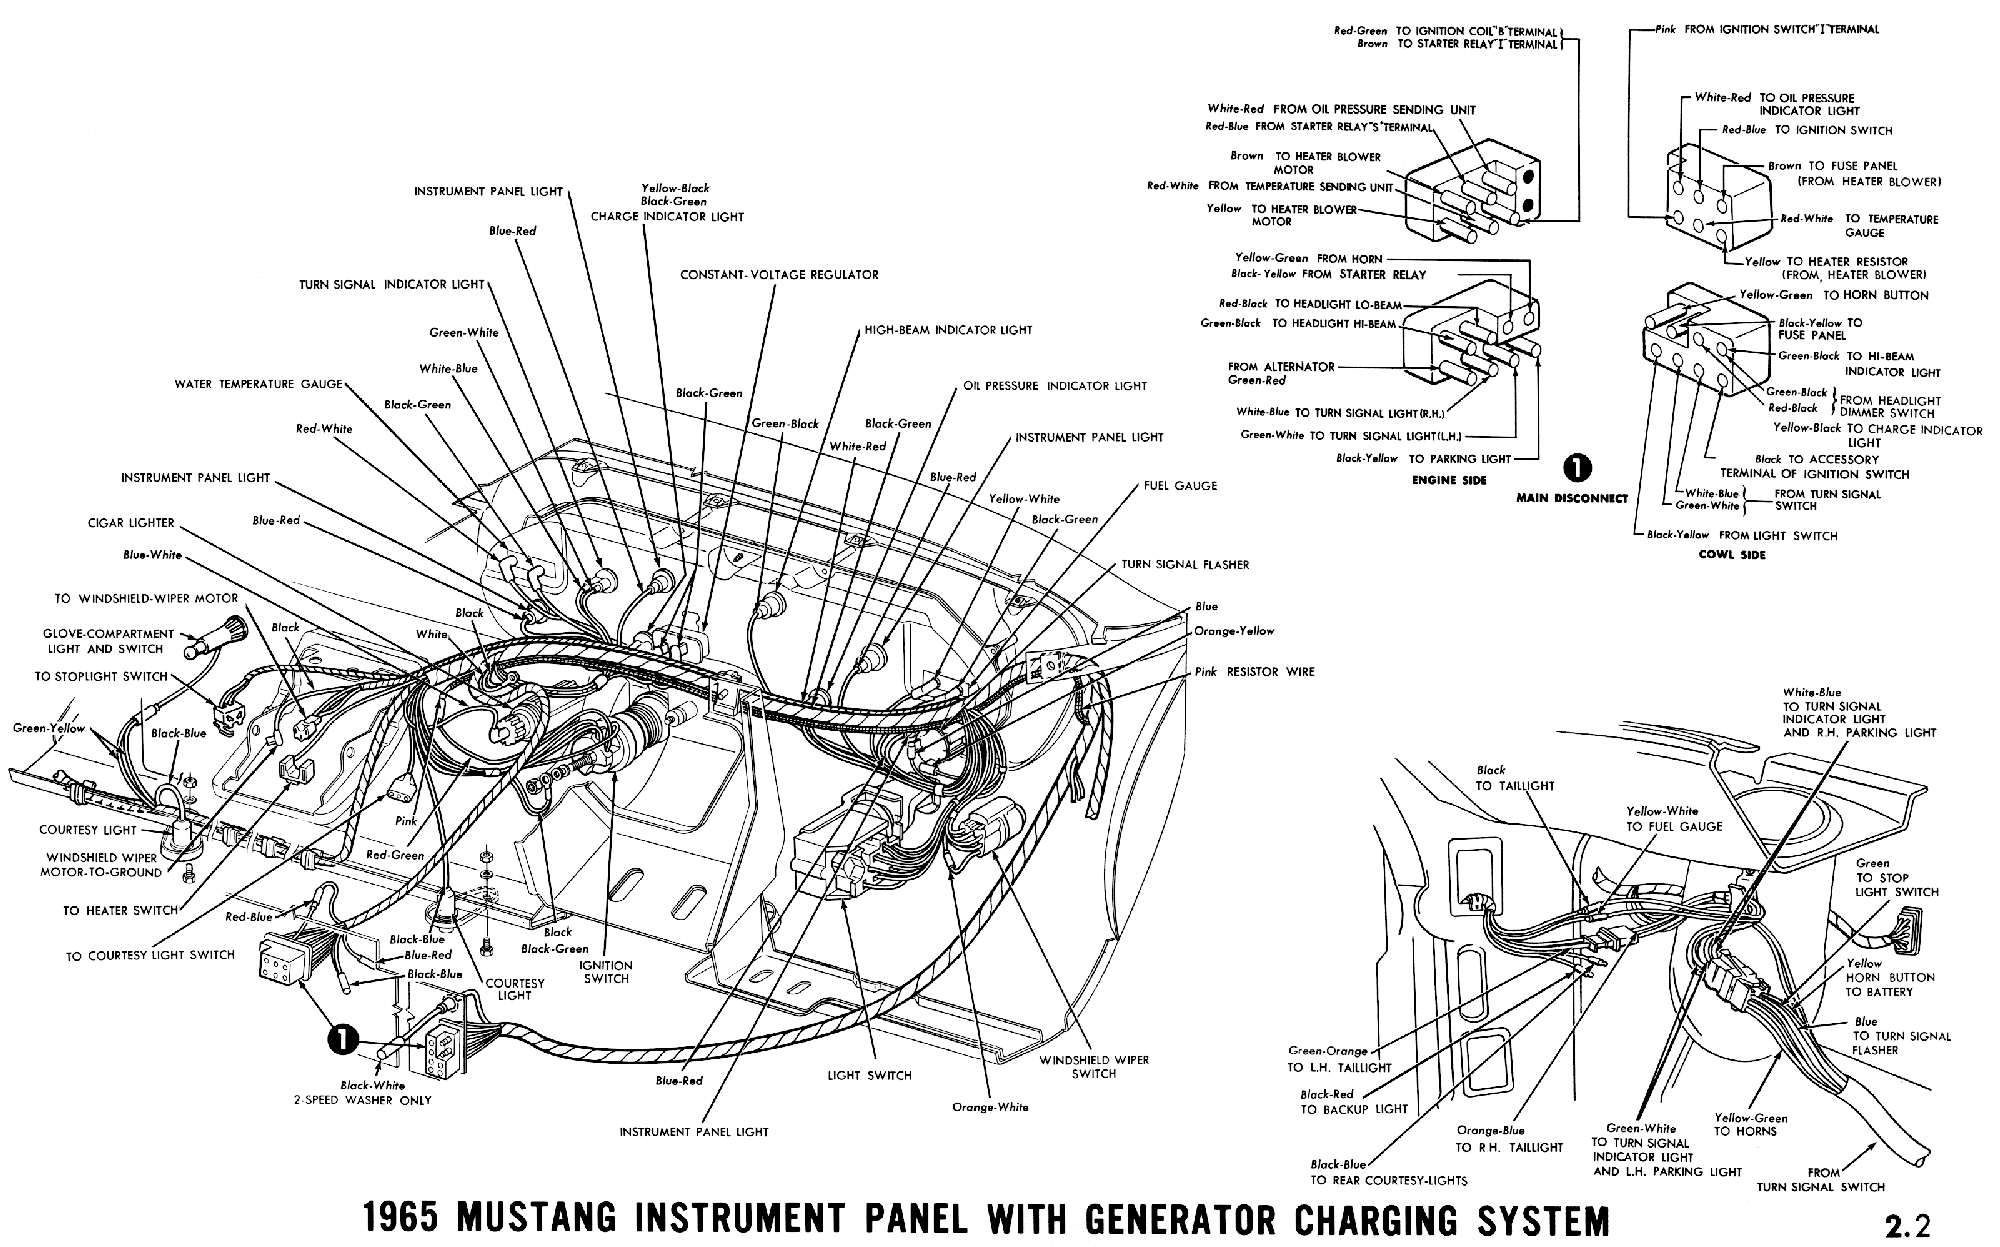 [DHAV_9290]  1966 Mustang Wiring Diagram Accessories Daewoo Racer Eti Wiring Diagram -  jibril.kucing-garong-9.sardaracomunitaospitale.it | 1966 Mustang Instrument Wiring Diagram |  | Wiring Diagram and Schematics